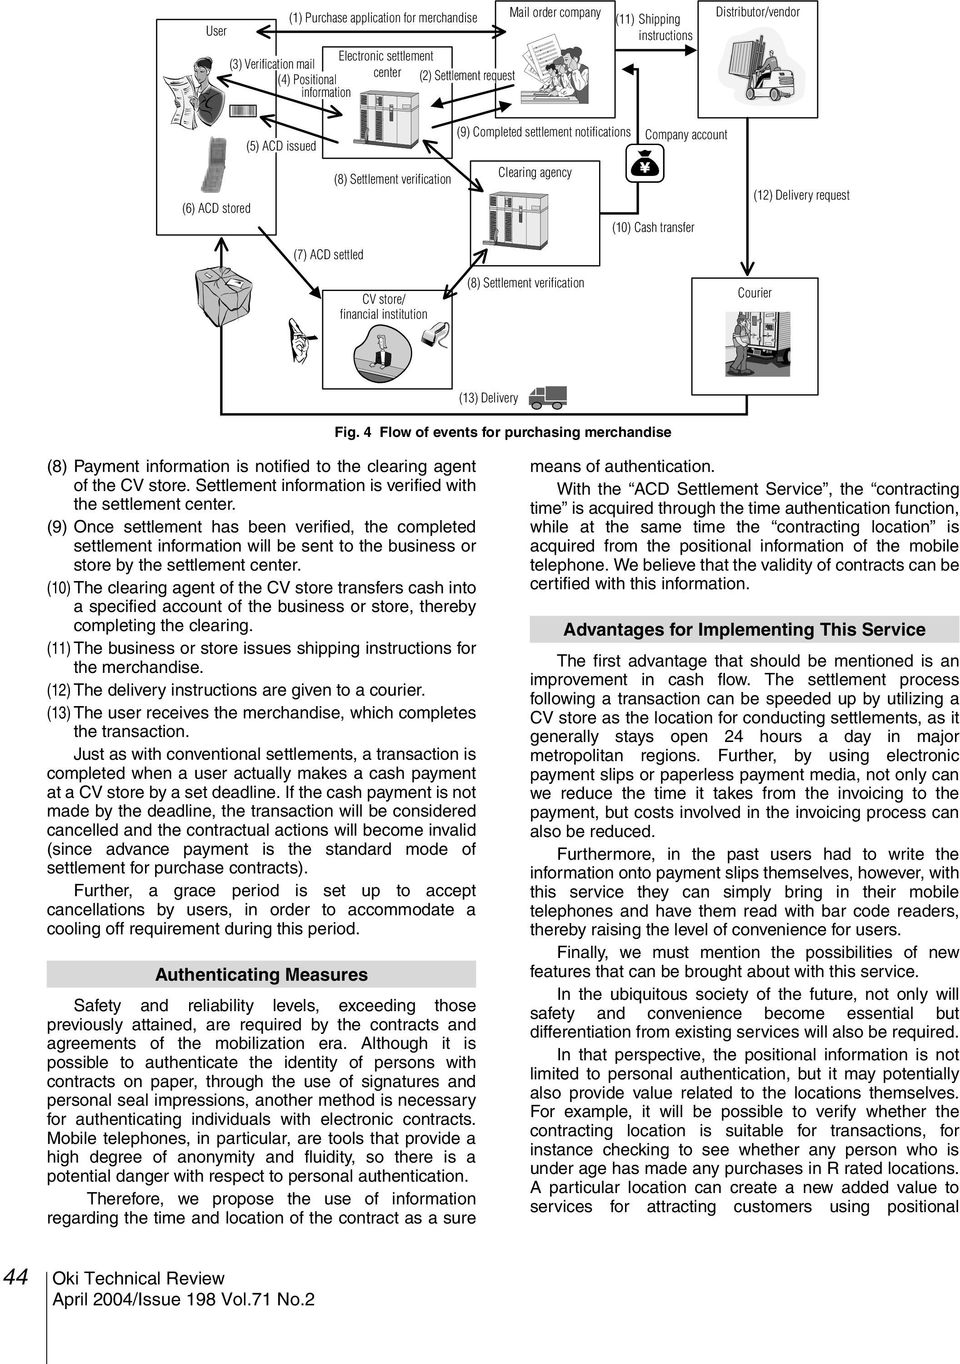 settled CV store/ financial institution (8) Settlement verification Courier (13) Delivery Fig.